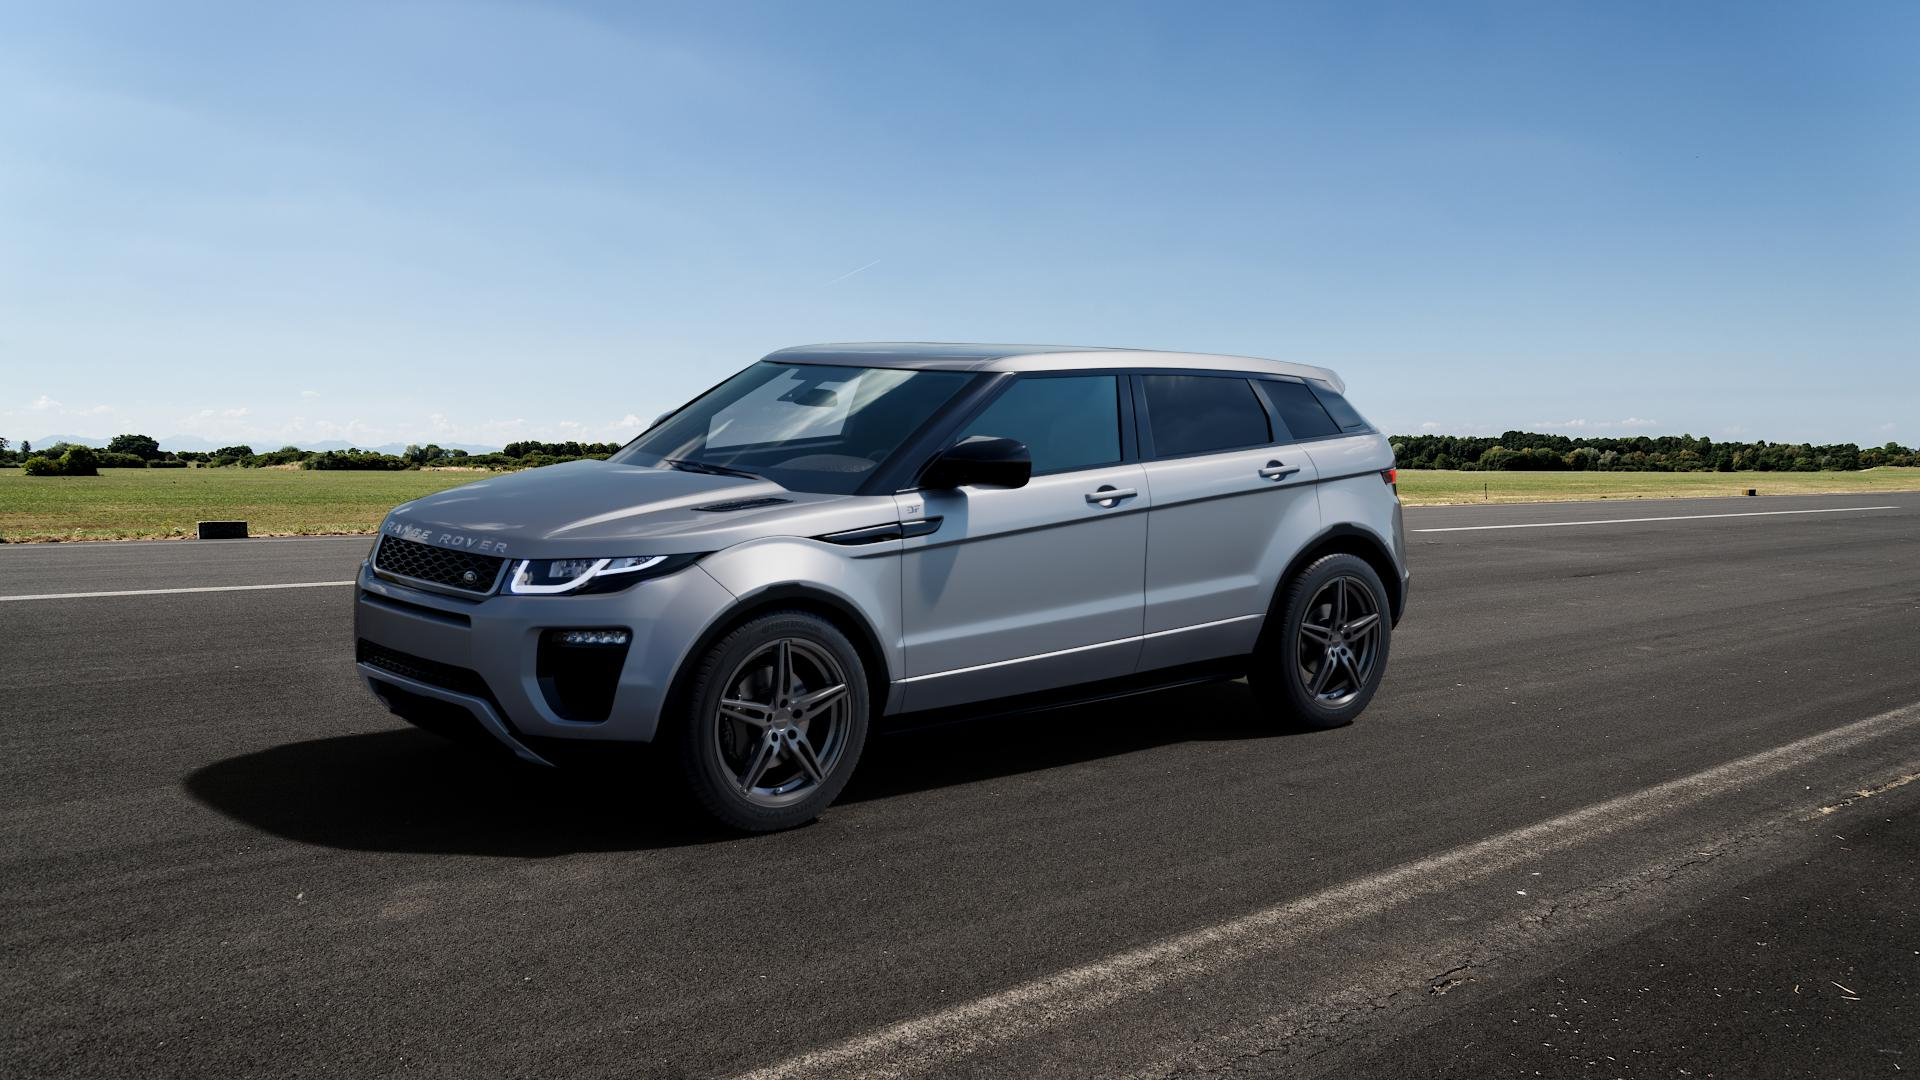 CARMANI 15 Oskar hyper gun Felge mit Reifen silber in 19Zoll Winterfelge Alufelge auf silbernem Land Rover Range Evoque Typ LV Facelift ⬇️ mit 15mm Tieferlegung ⬇️ Big_Vehicle_Airstrip_1 Frontansicht_1